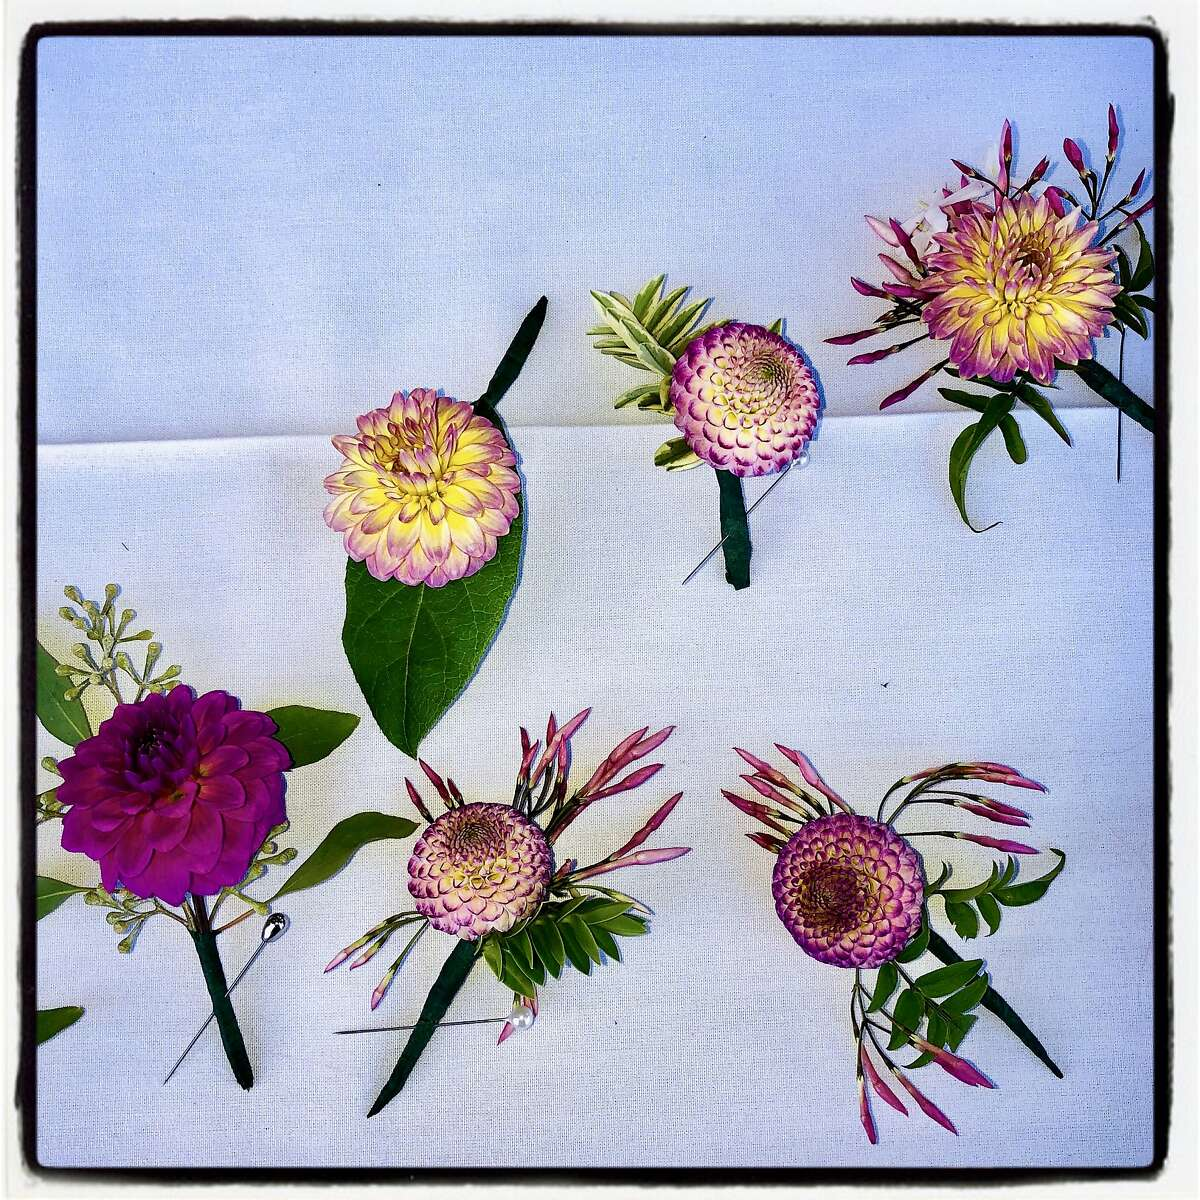 Guest boutonnières from the Golden Gate Park Dahlia Garden at Party for the Parks Sept. 12, 2019.